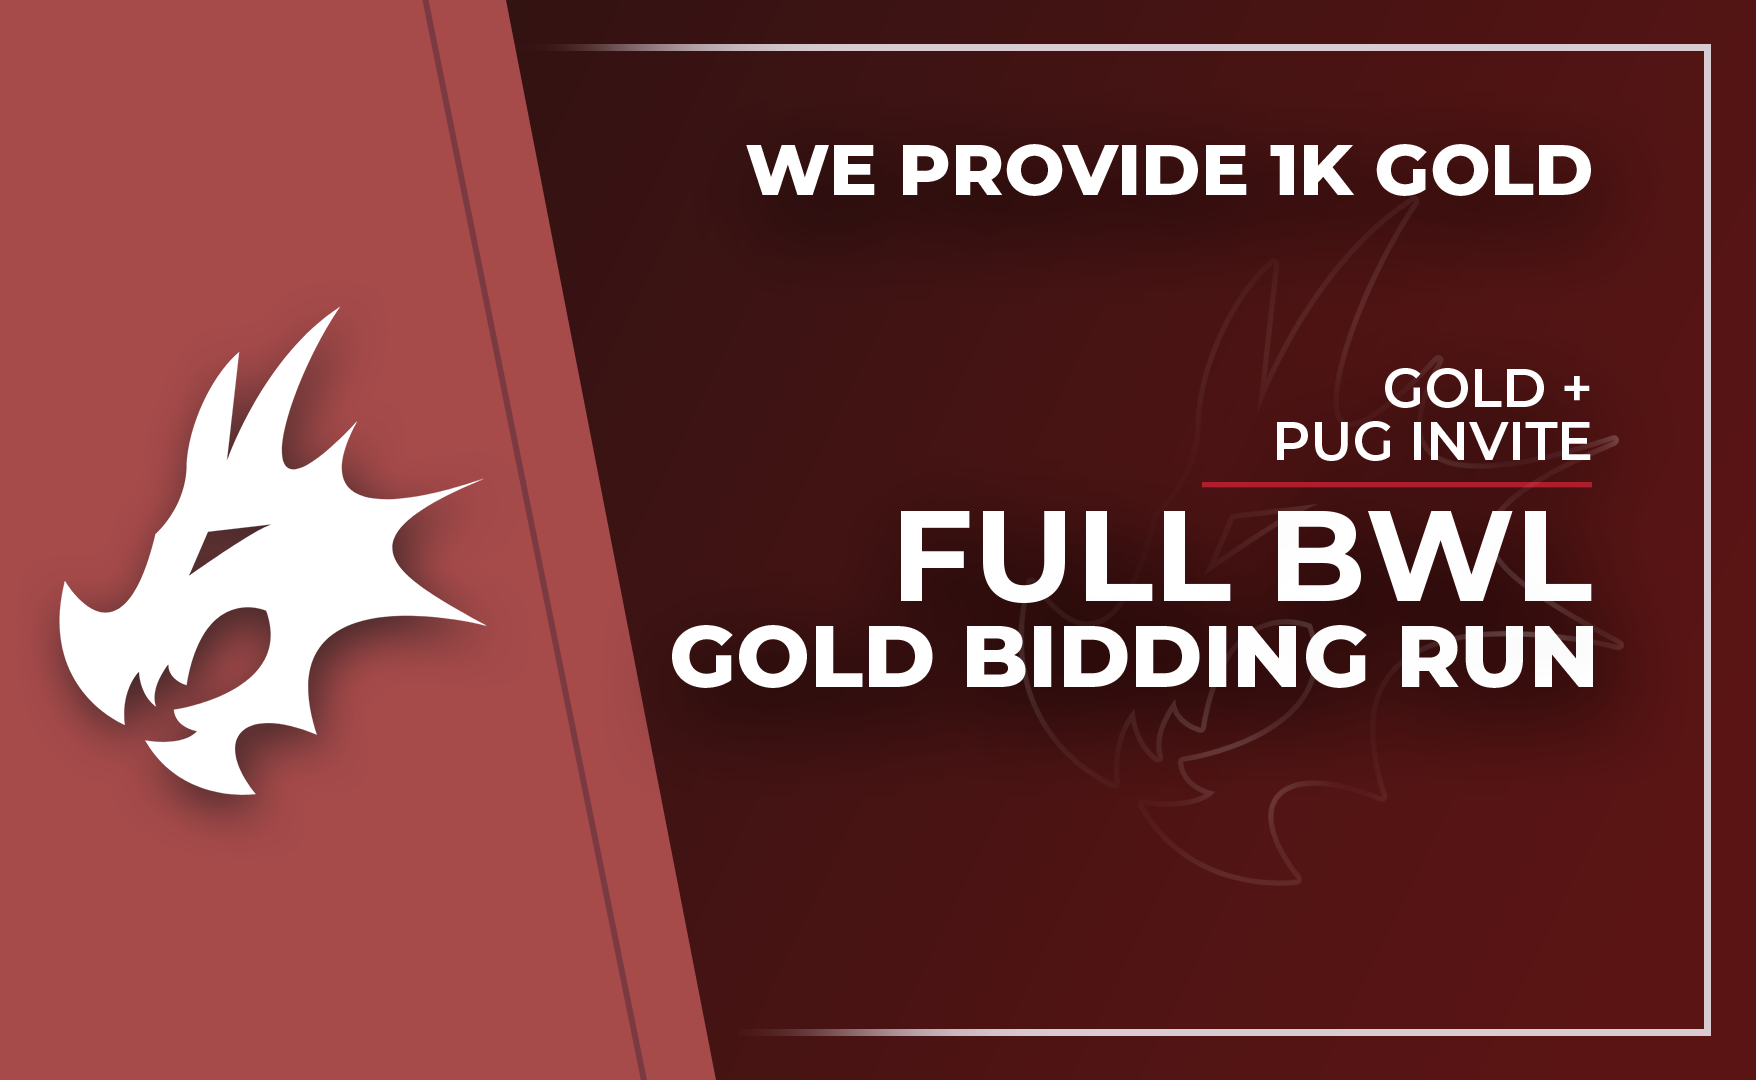 BWL Gold Bid Run - 1000 Gold